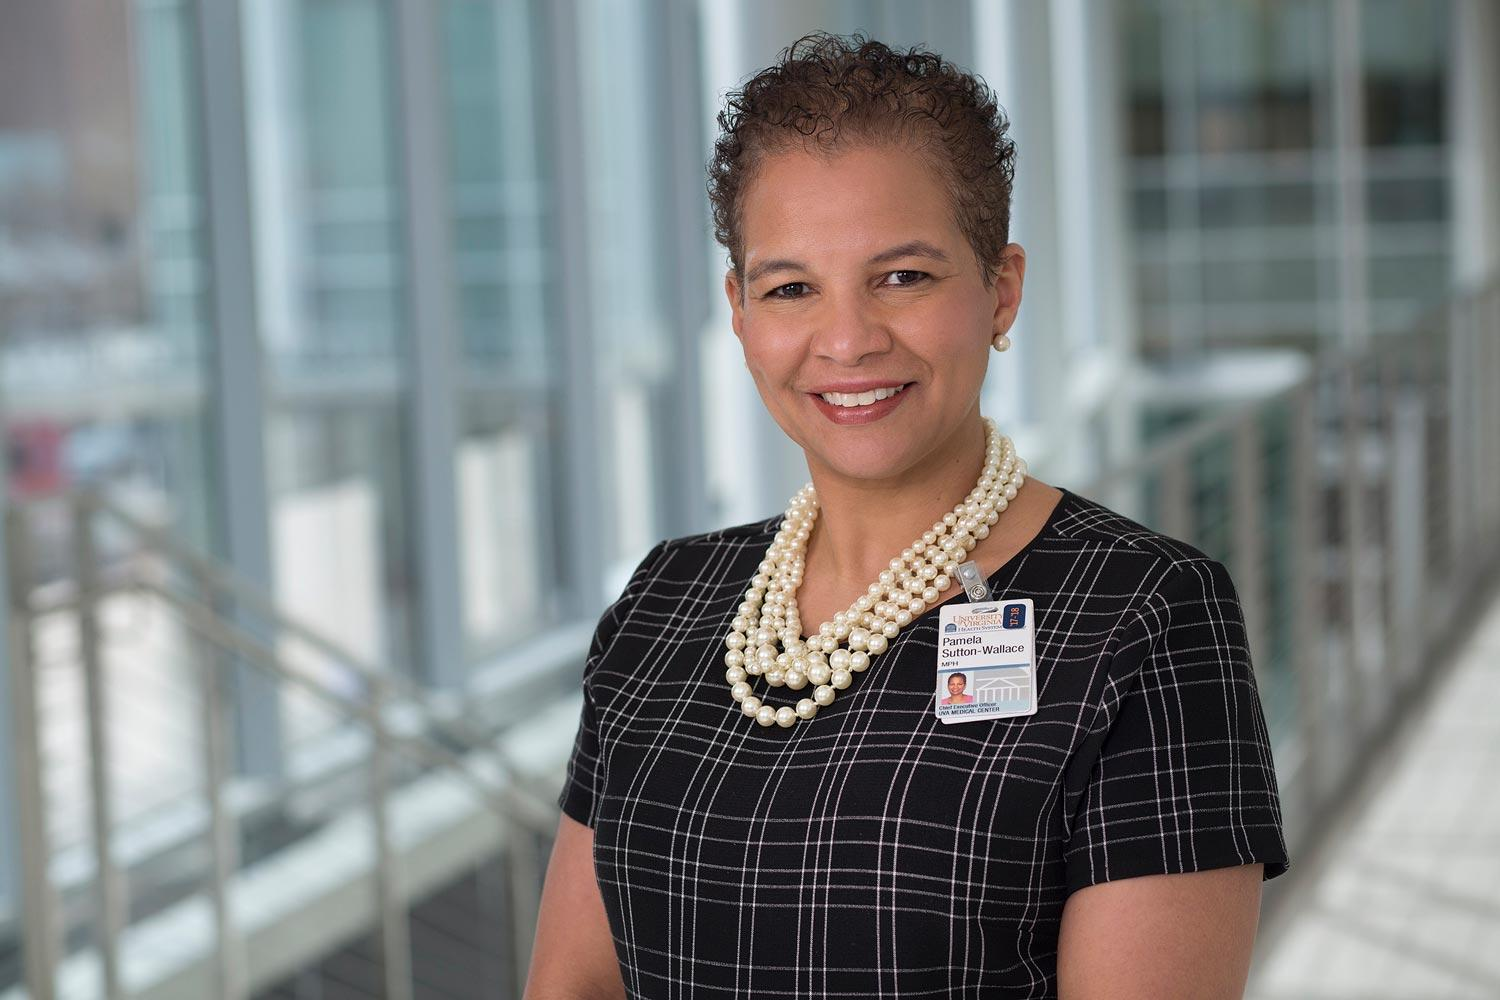 The latest honor is UVA Medical Center CEO Pamela Sutton-Wallace's fourth from Modern Healthcare since 2007.